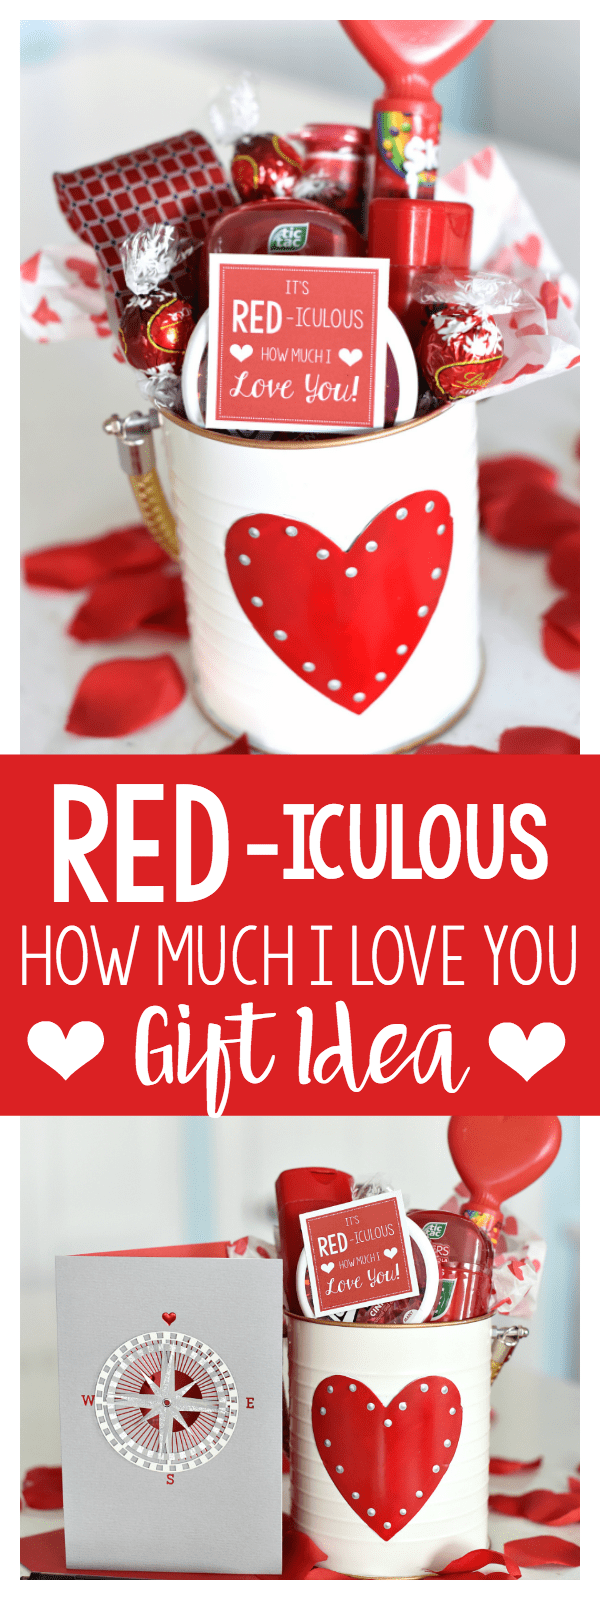 """Cute Valentine's Gift Idea-Red Themed Items and Cute Tag That Says """"It's RED-iculous How Much I LOVE You! This is such a fun and simple Valentine's Day gift, it will be a hit for sure. #valentinesdaygift #valentinegiftidea #valentinegift #gifts"""